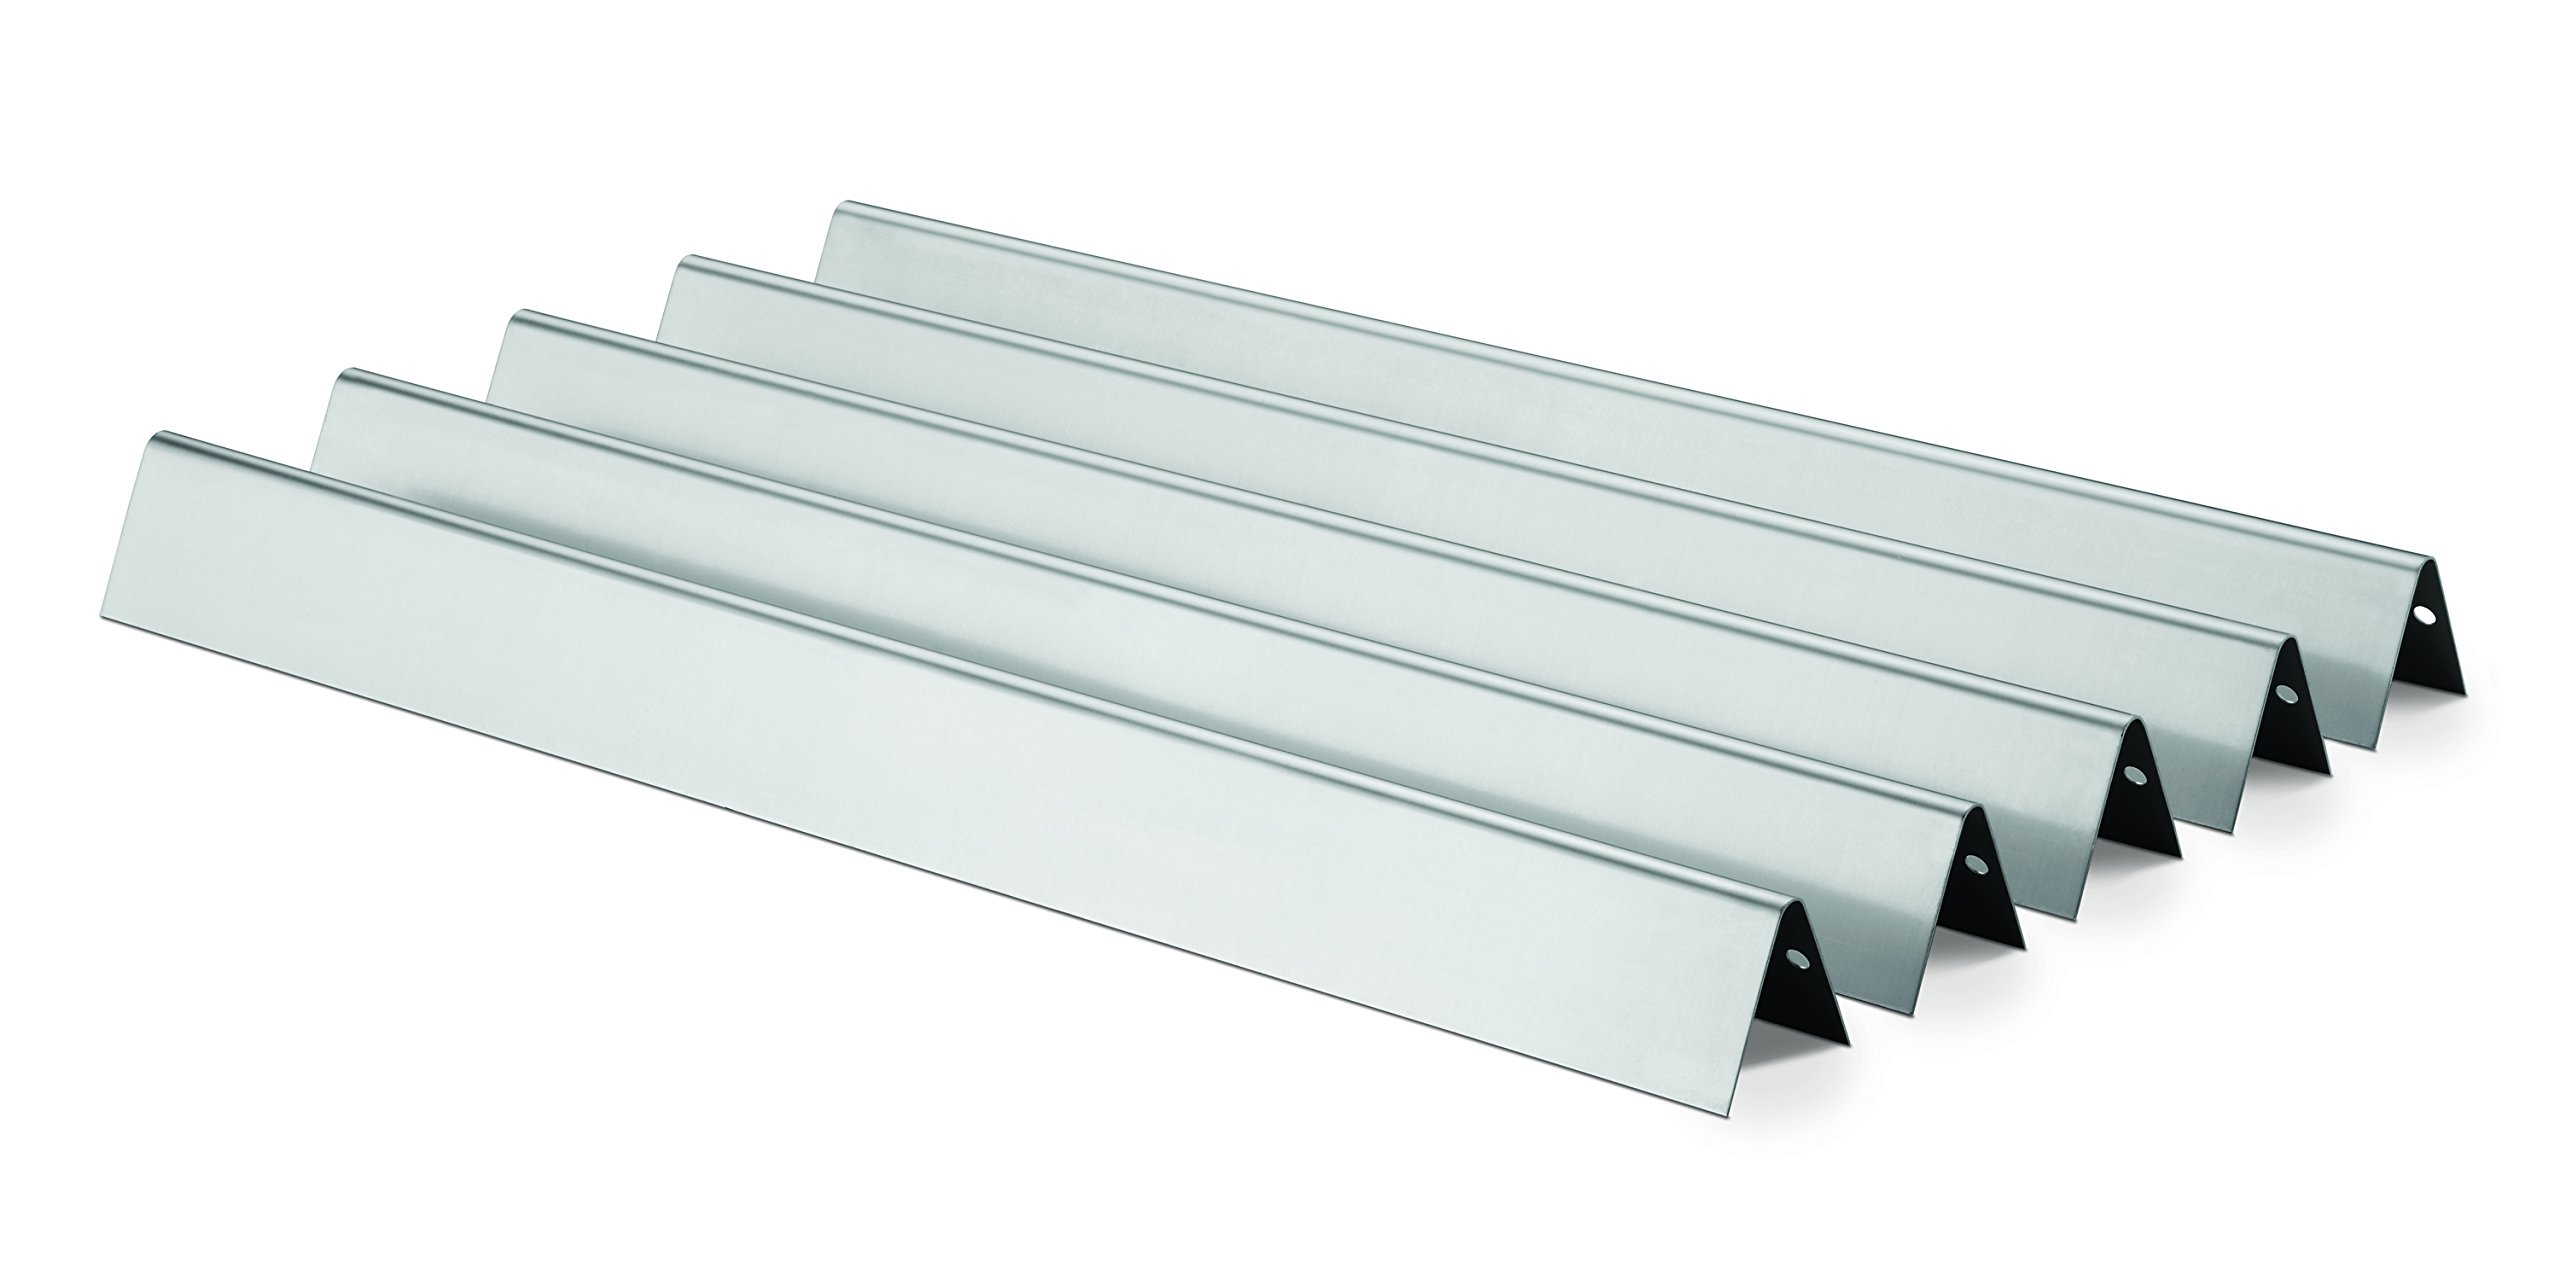 Weber 7540 Stainless Steel Flavorizer Bars (24.5 x 2.375 x 2.375) by Weber (Image #2)